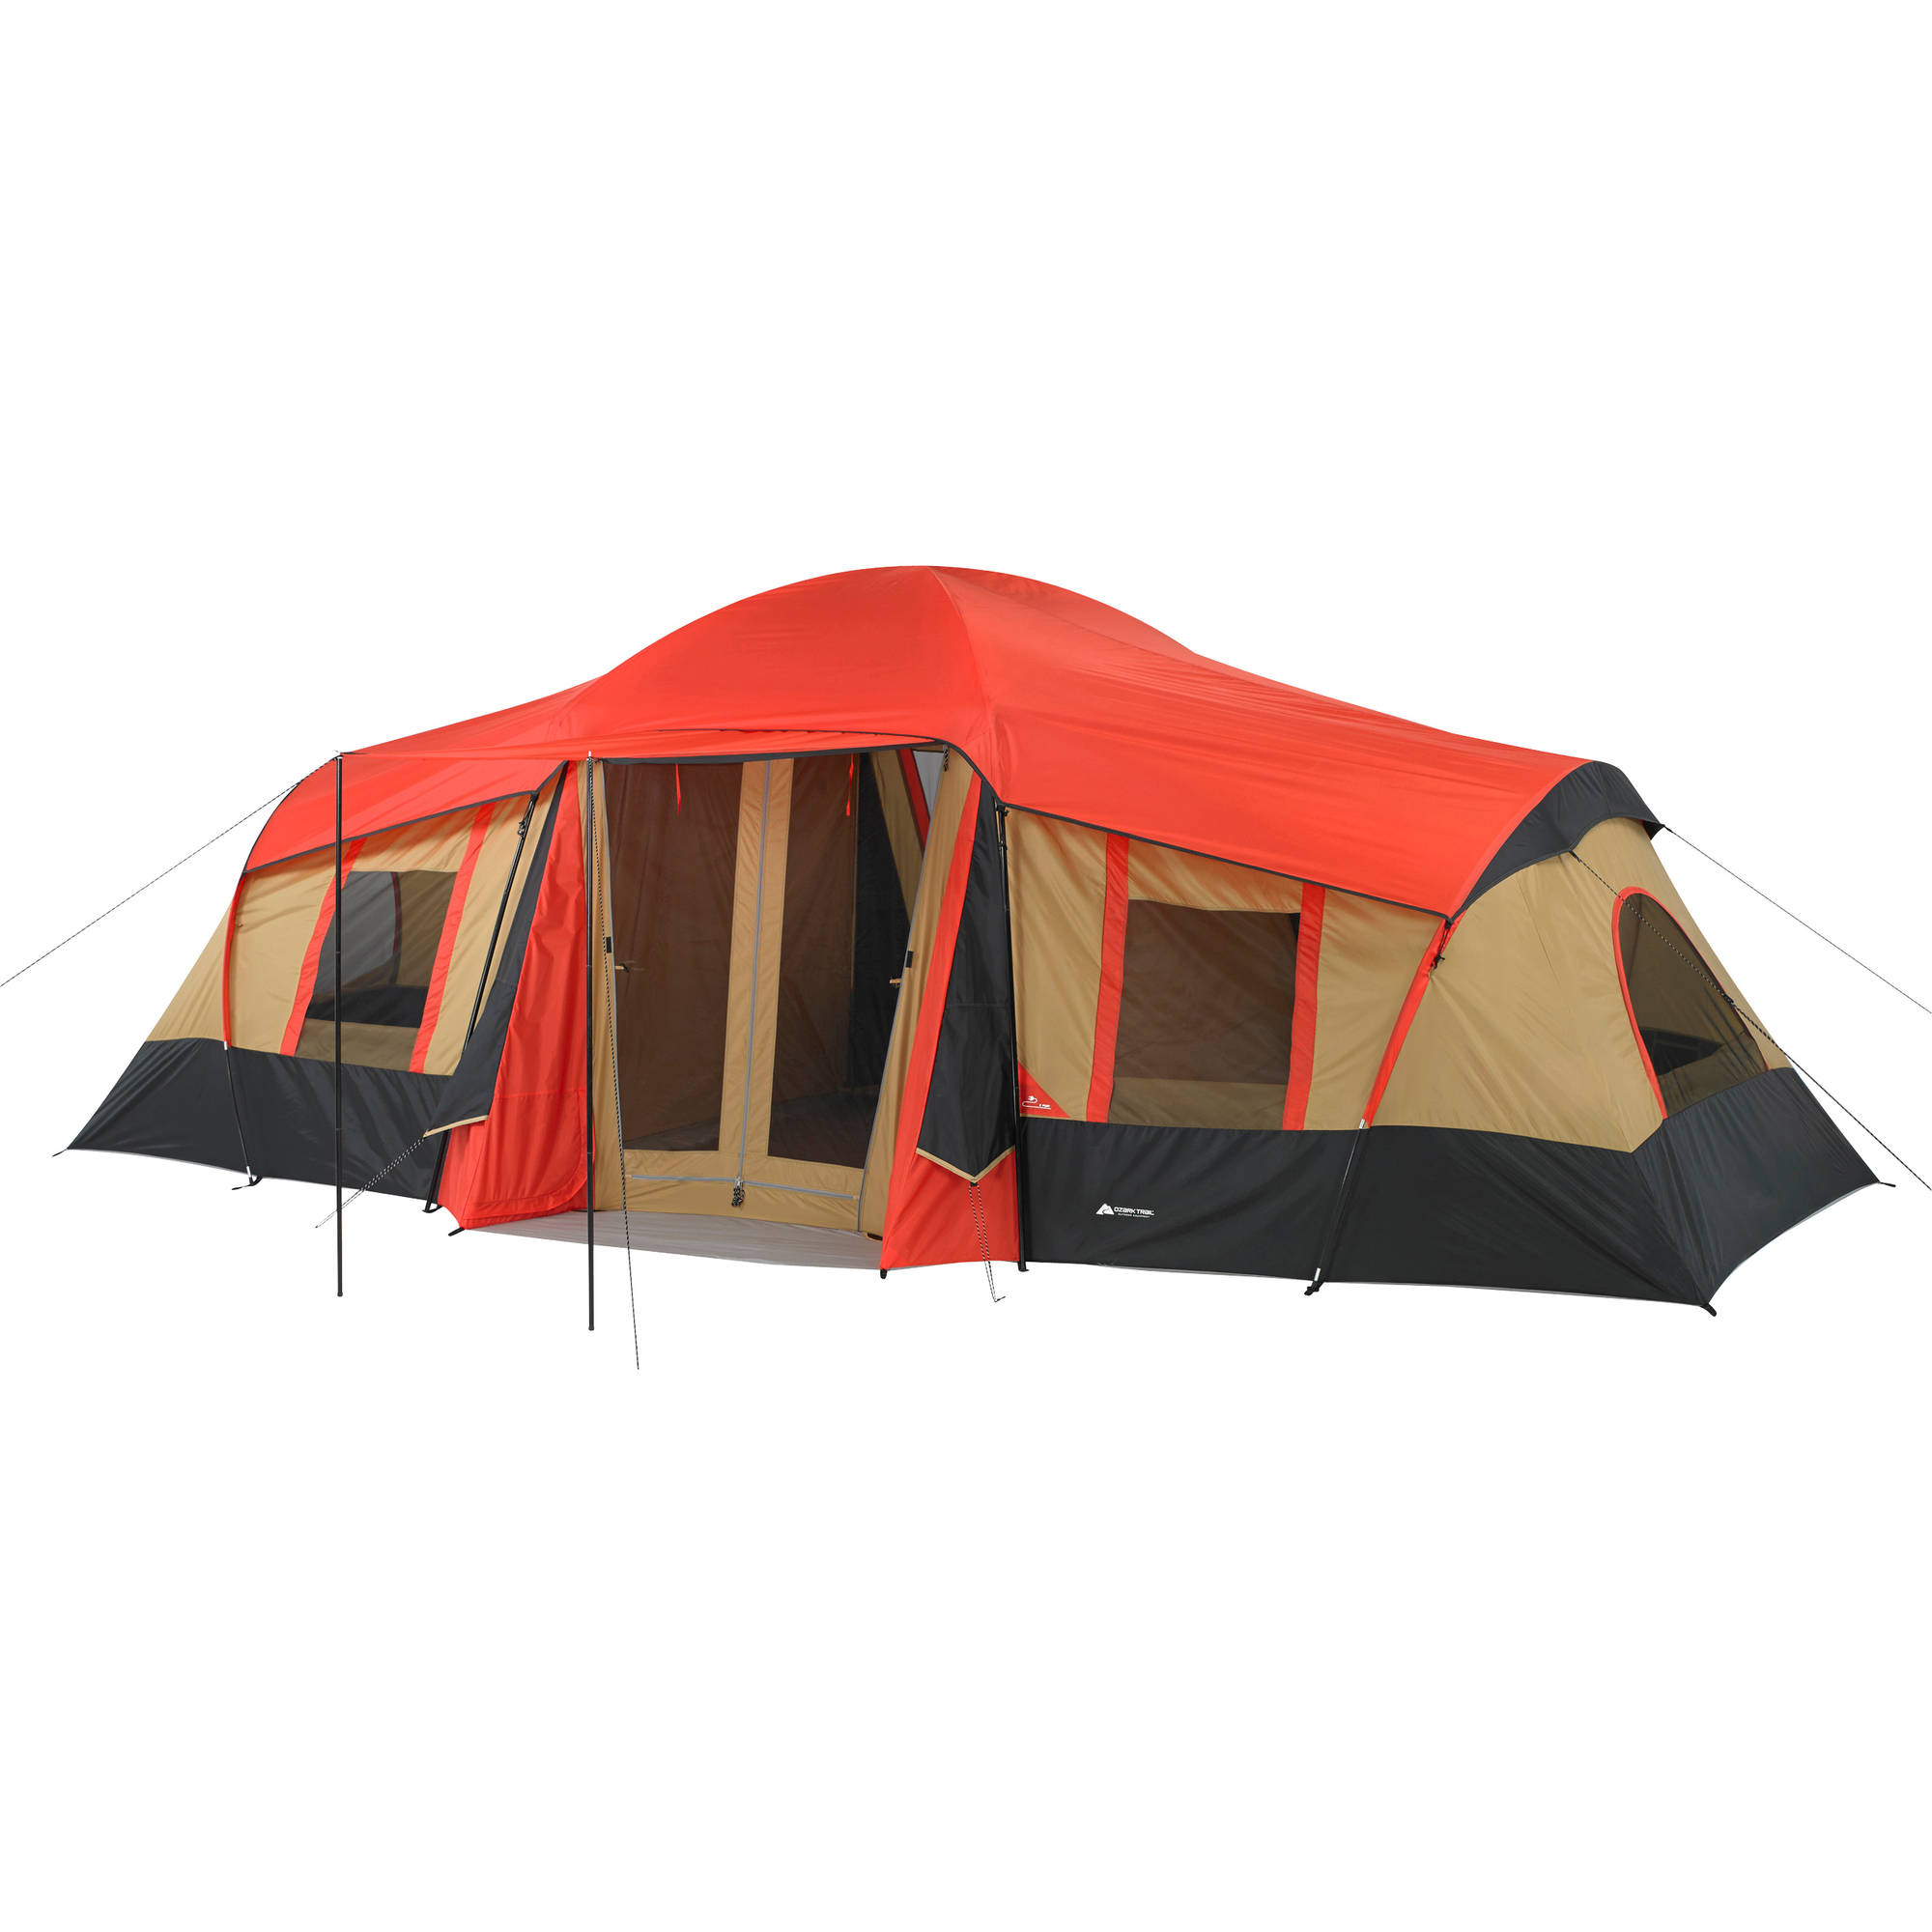 Ozark Trail 10-Person 3-Room Vacation Tent with Built-in Mud Mat  sc 1 st  Tents - Walmart.com & Tents - Walmart.com